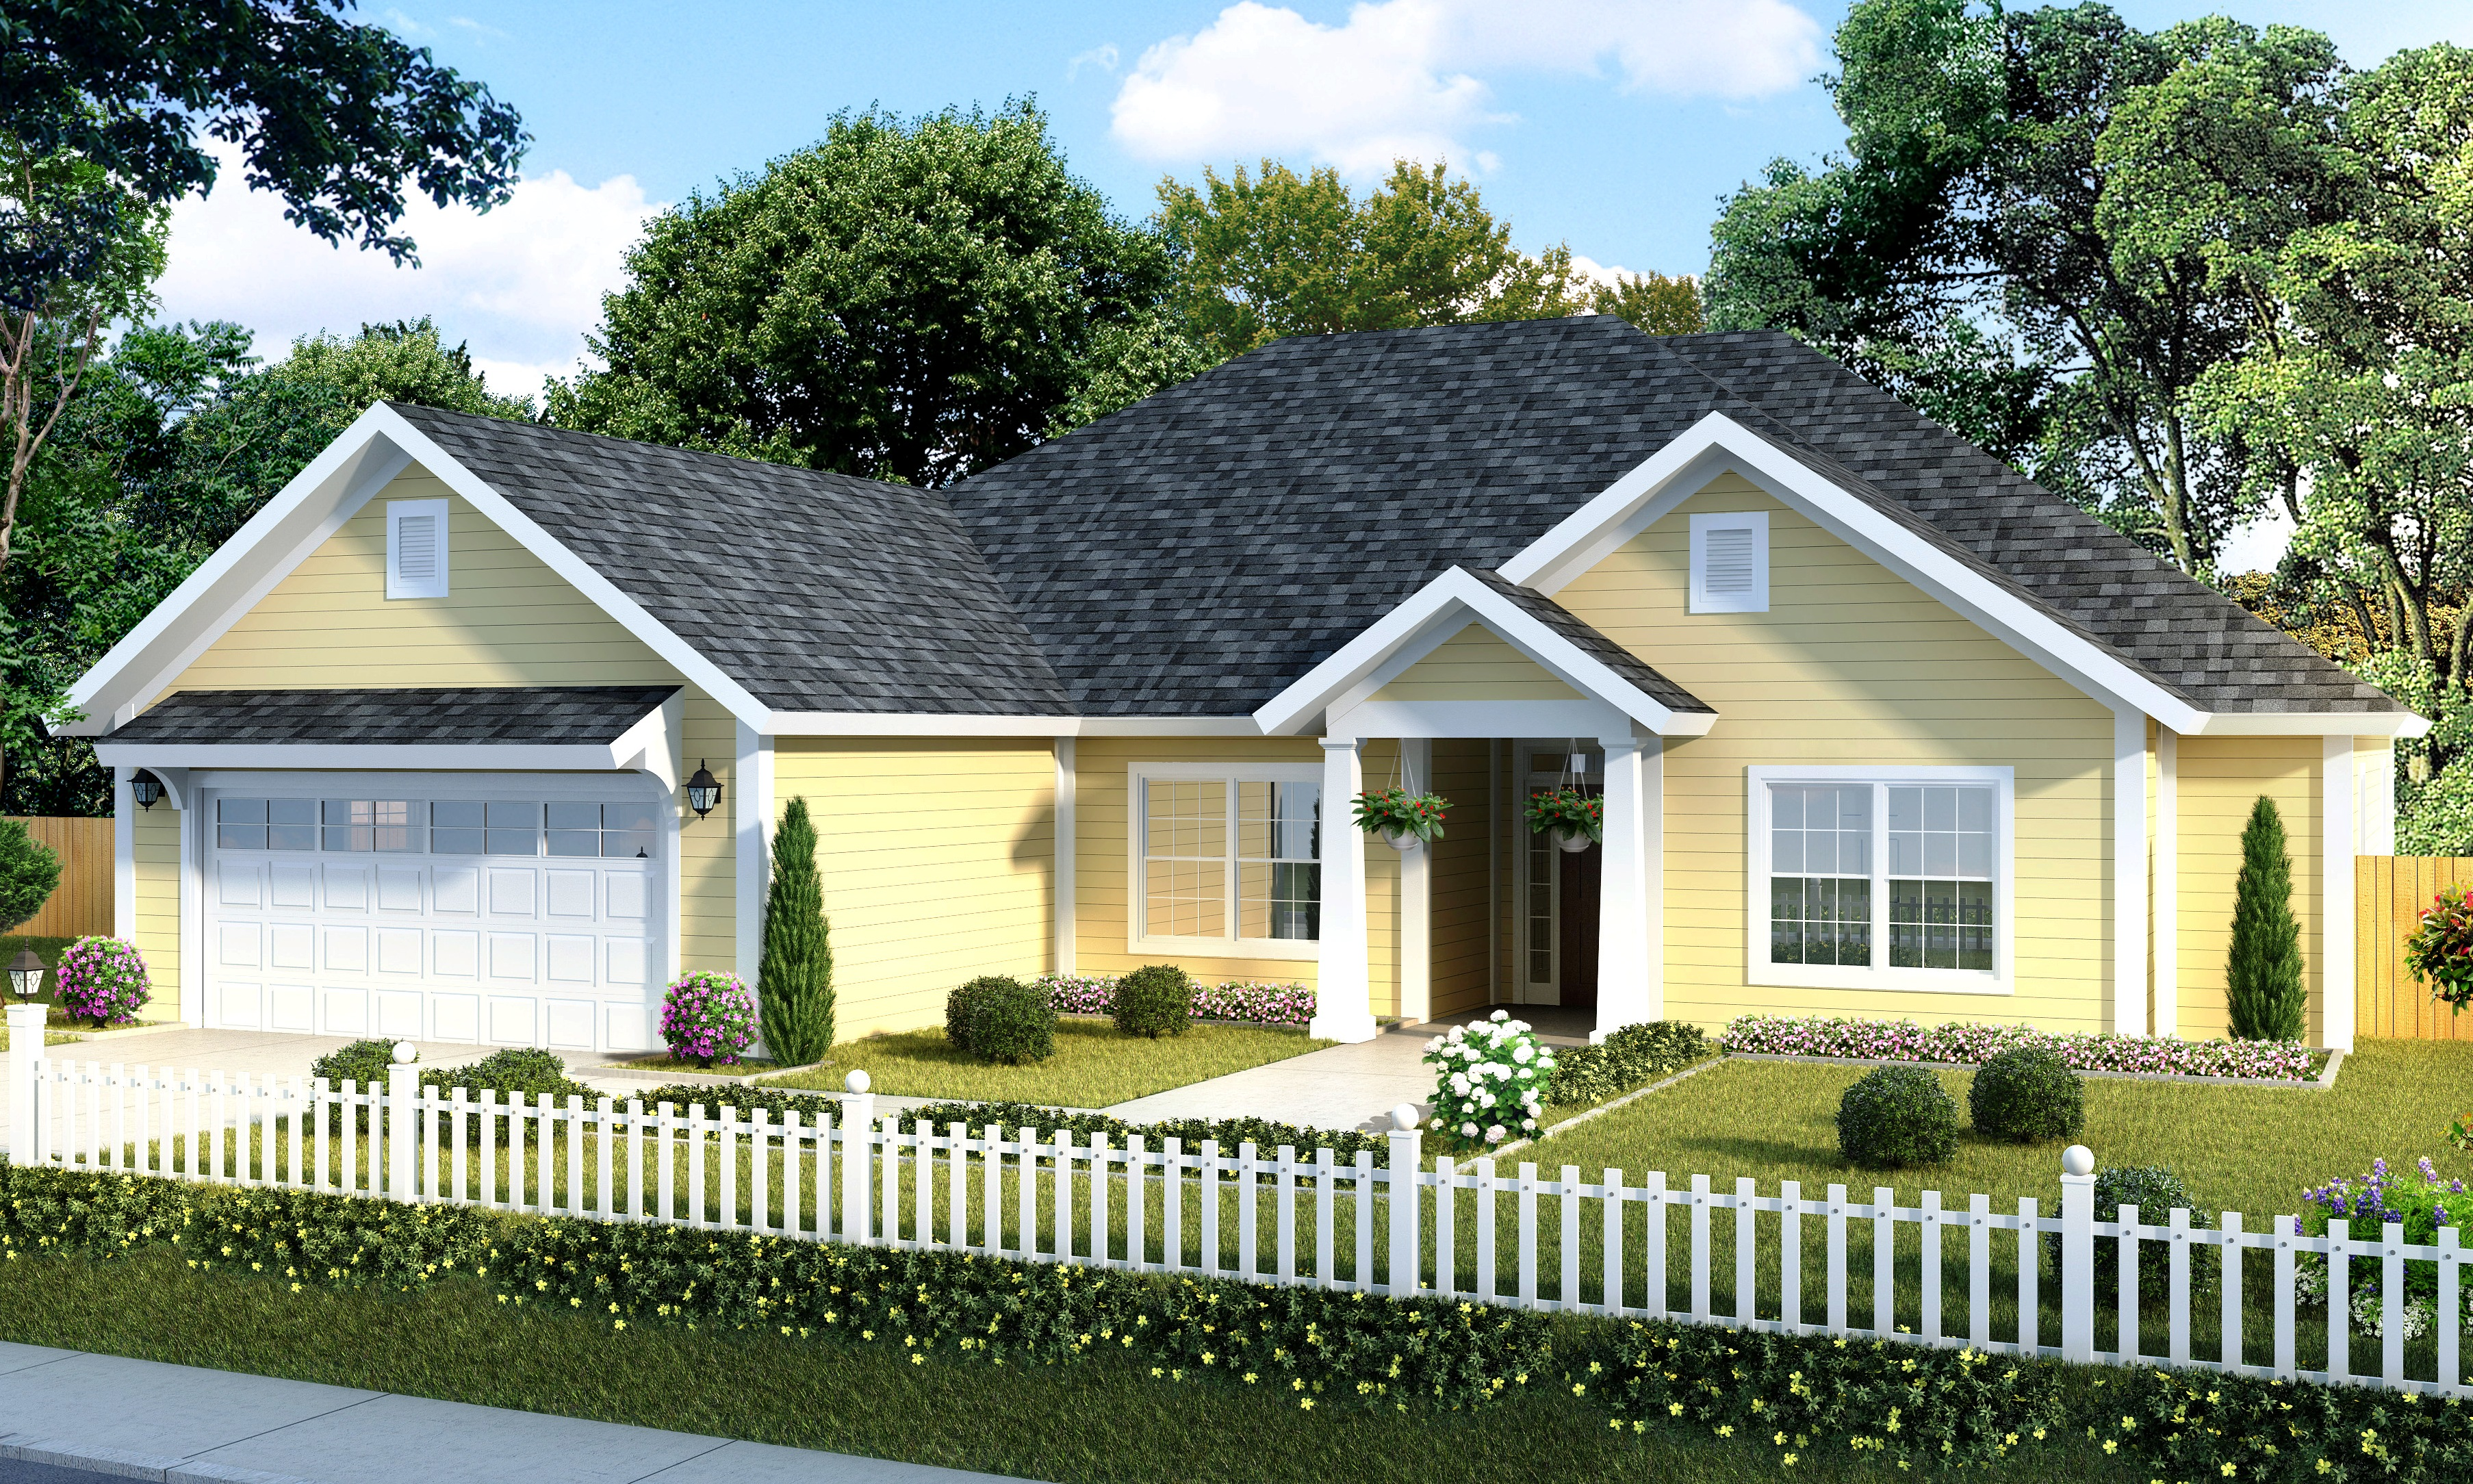 Southern House Plan Southern House Plan With Five Bedrooms  52266Wm  Architectural